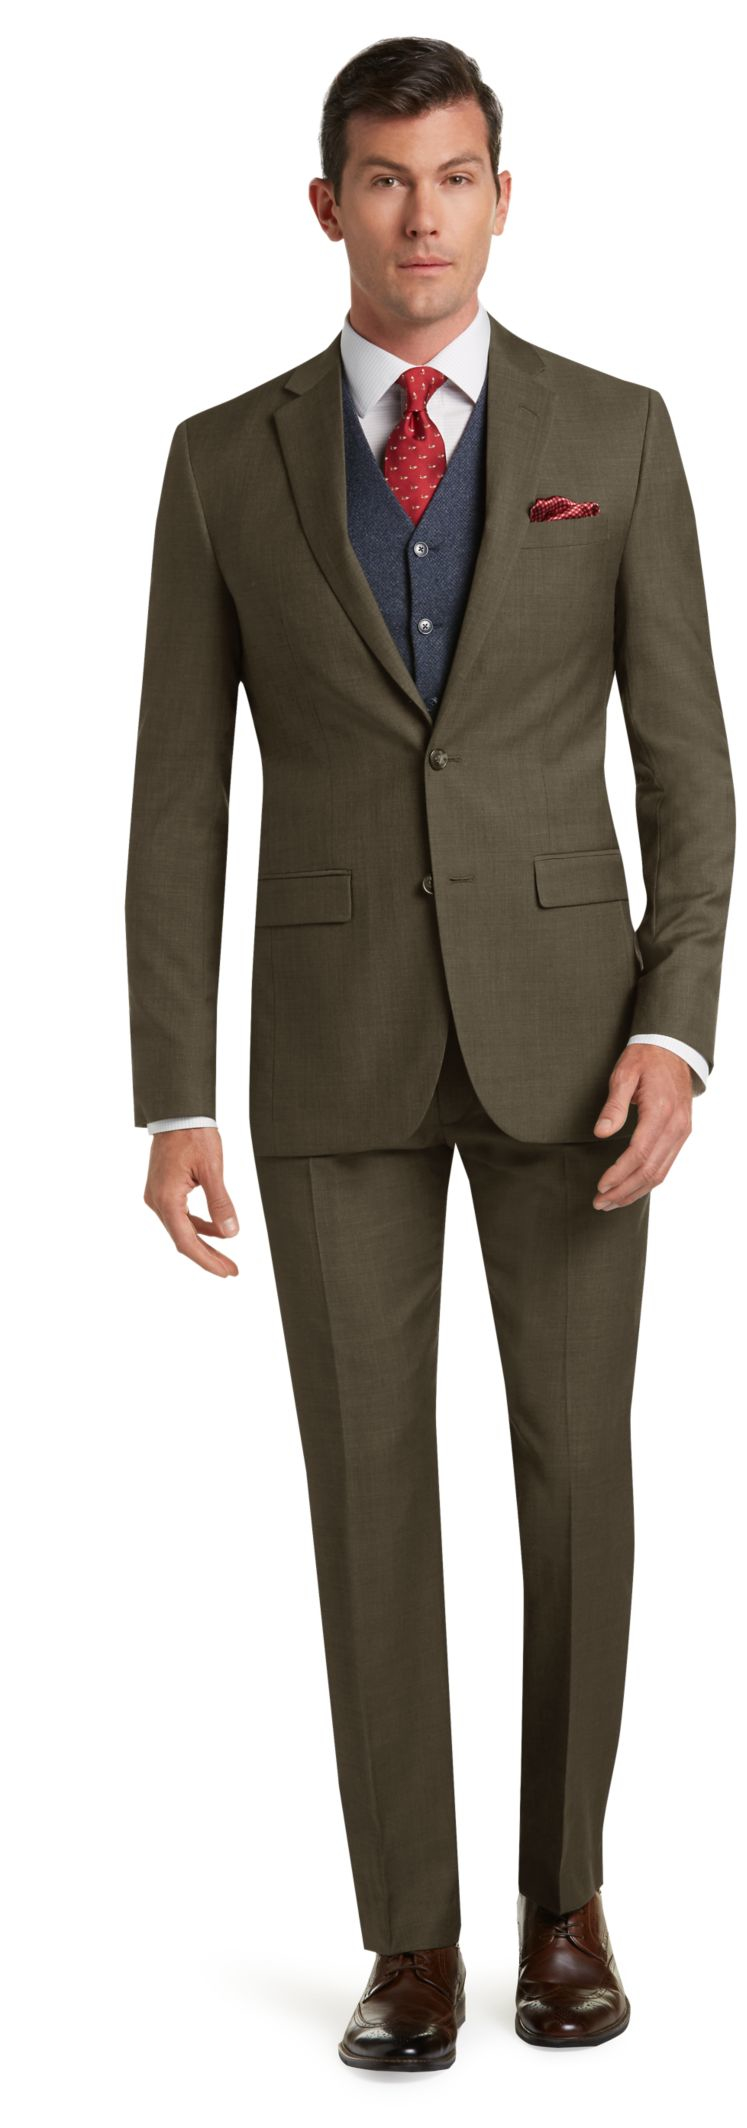 Jos a bank traveler 39 s collection tailored fit suit in for Jos a bank tailored fit vs slim fit shirts